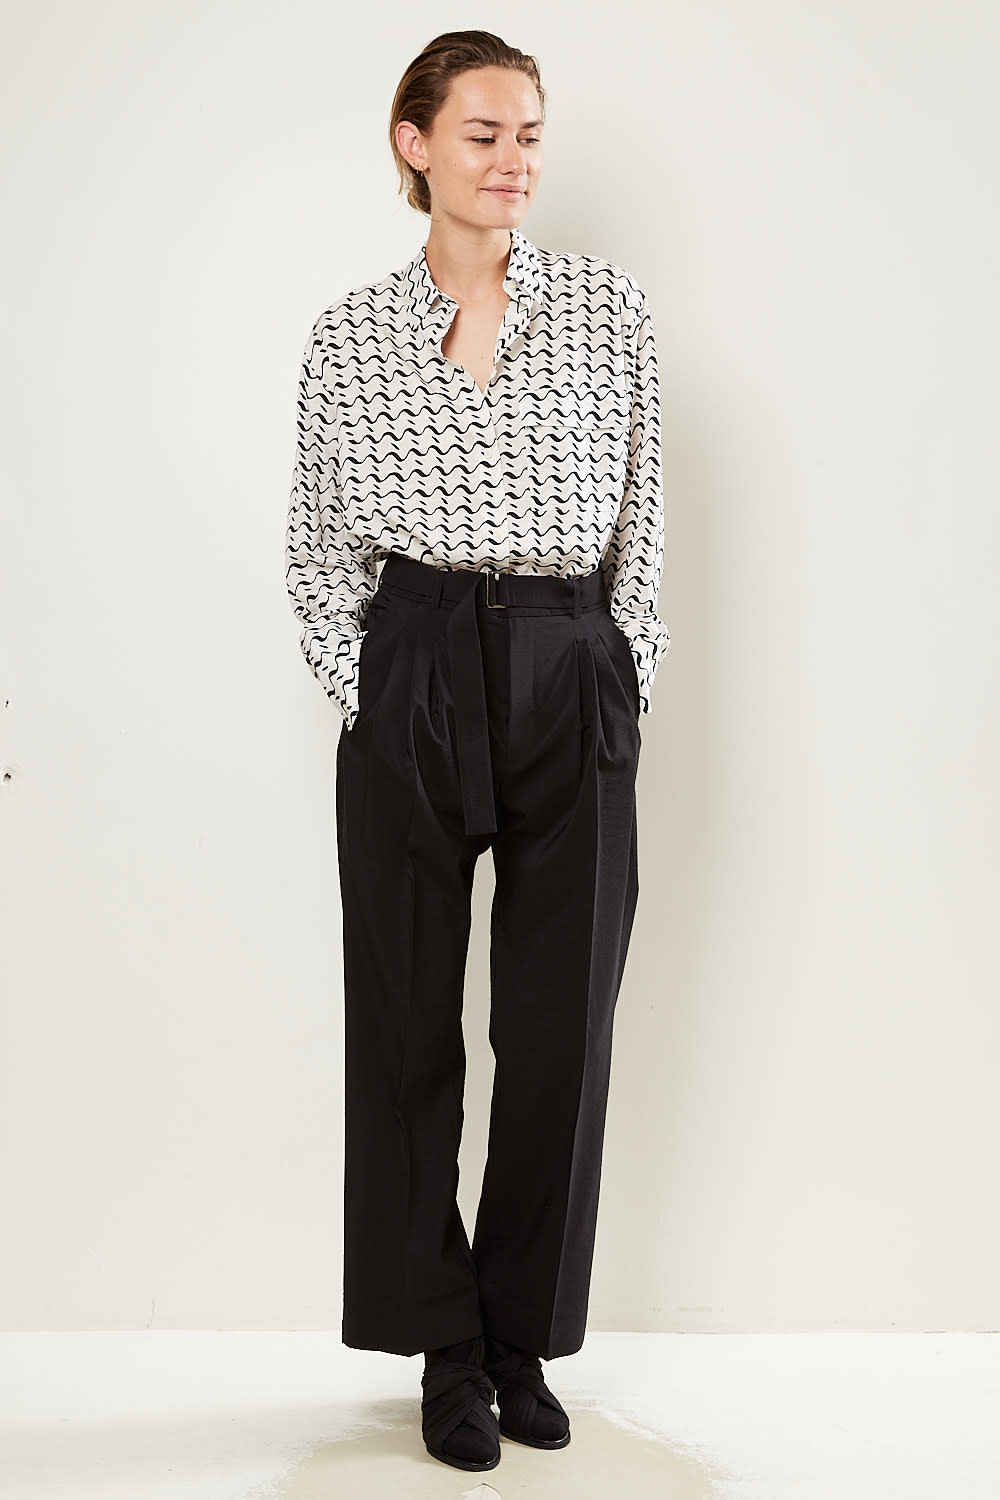 Christian Wijnants - Pendo wide pleated pants